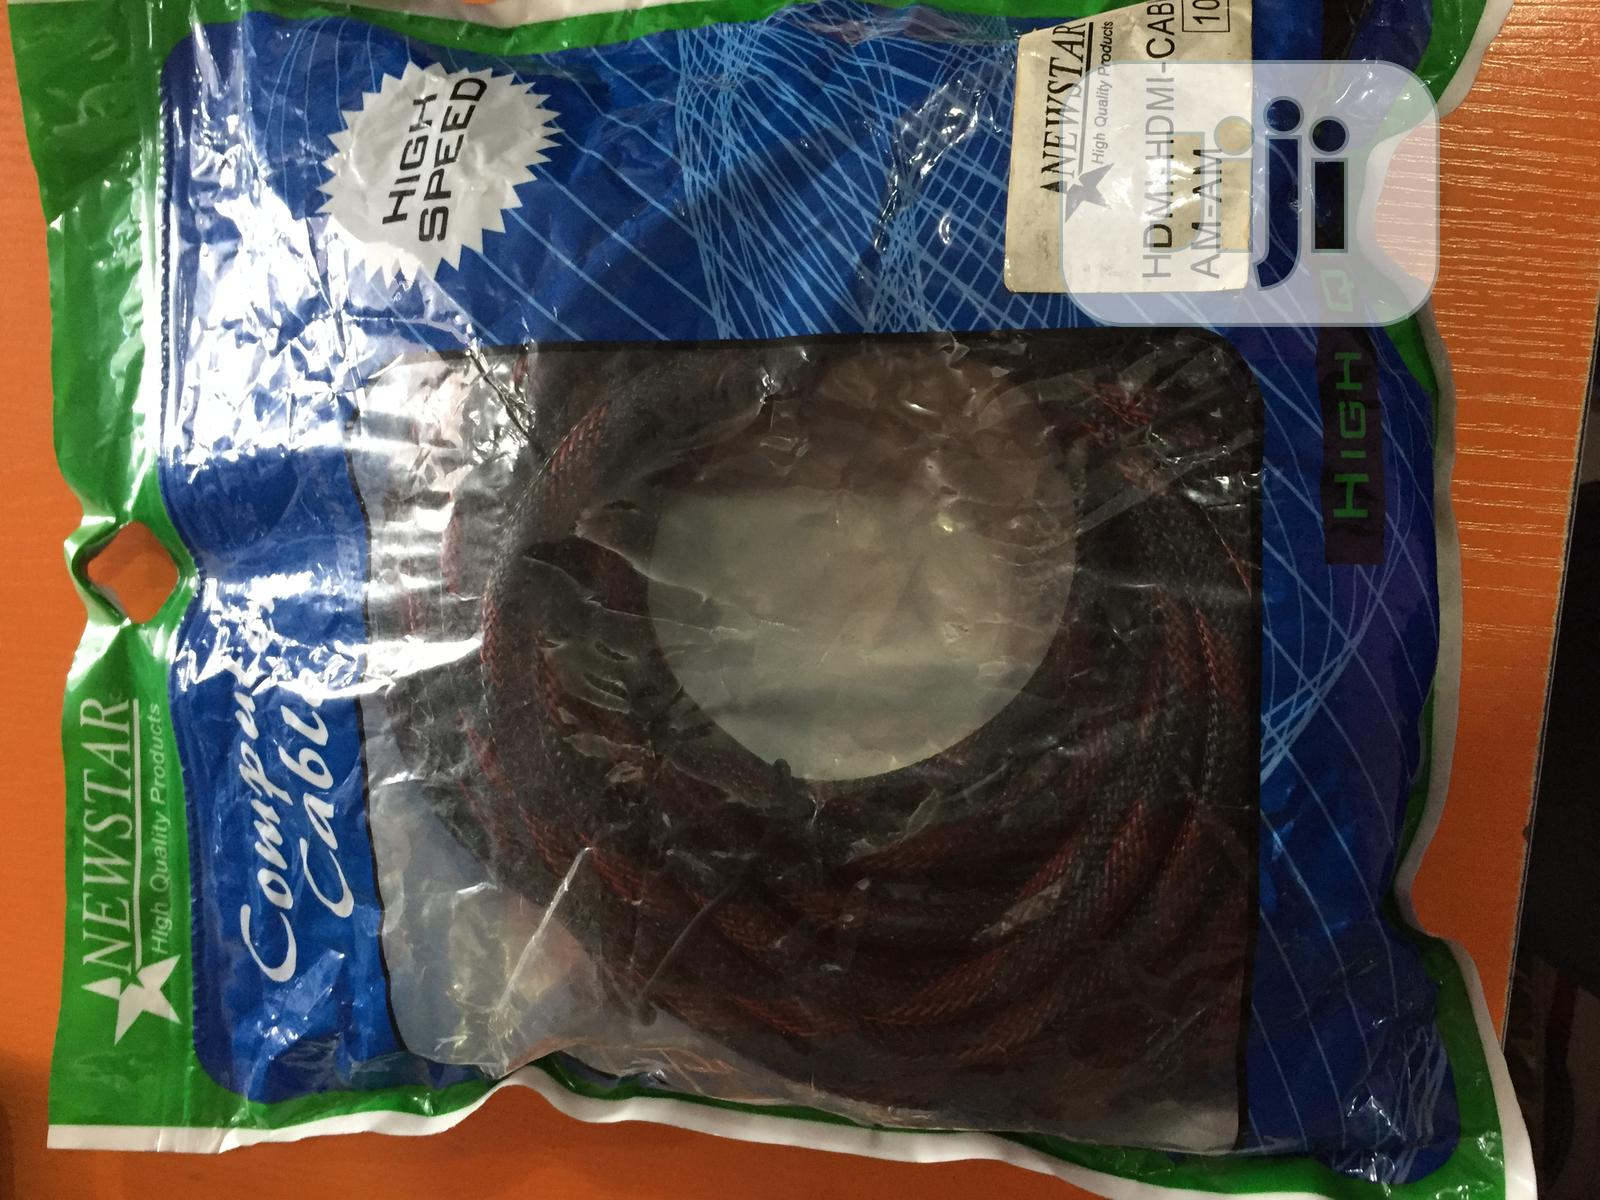 HDMI Cable 20M HDMI Cable | Accessories & Supplies for Electronics for sale in Uyo, Akwa Ibom State, Nigeria